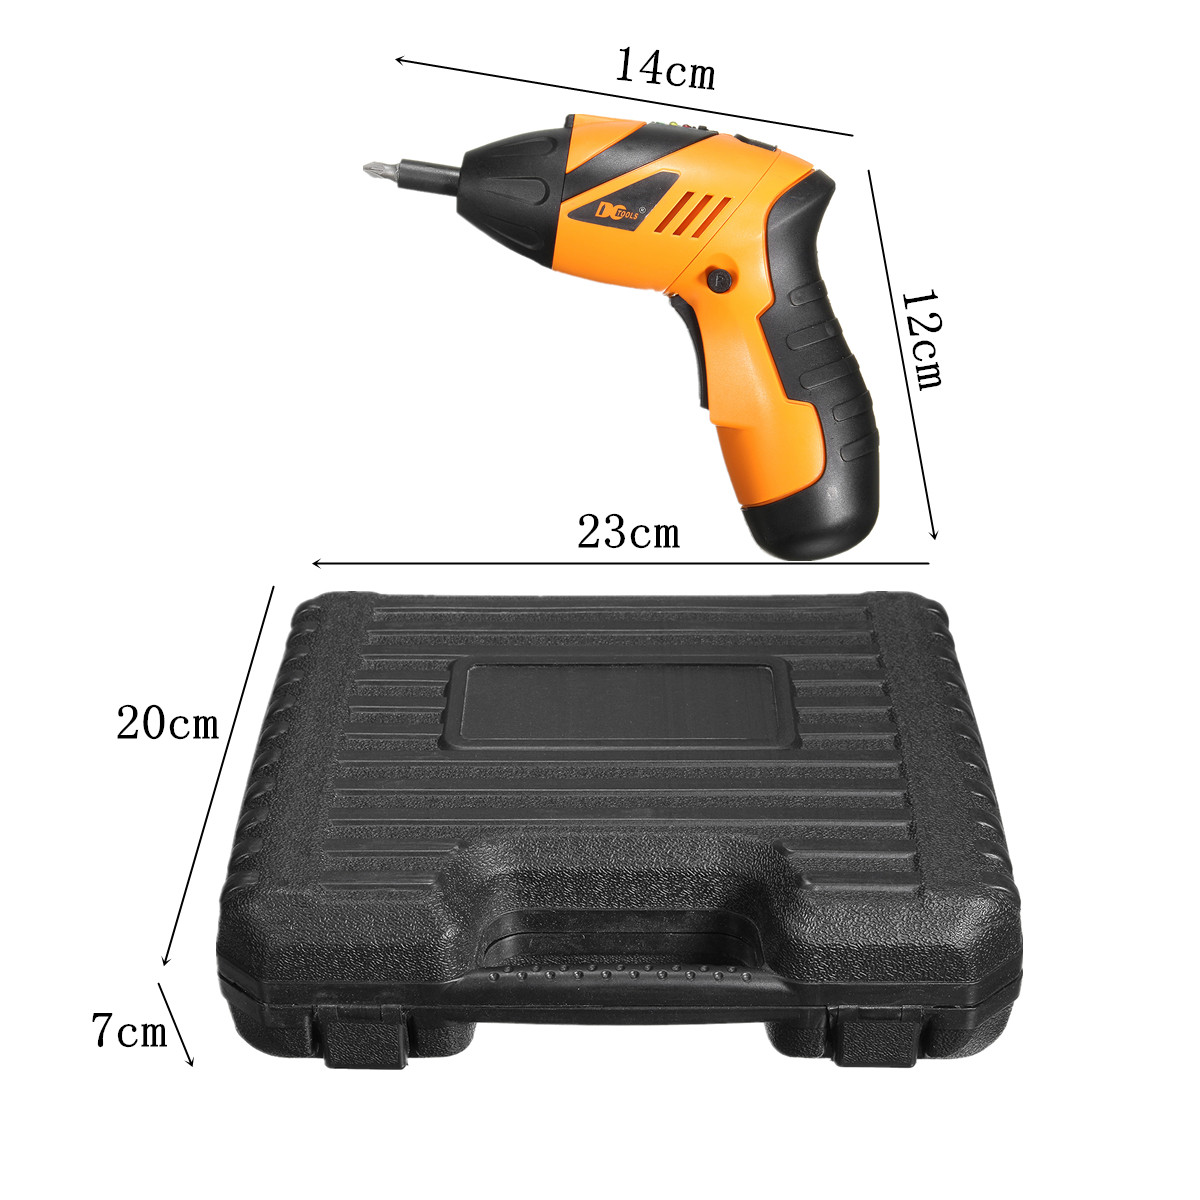 Charger Screwdrivers 45pcs Rechargeable Cordless 4.8v Electric Screwdriver Drill Tool Kit